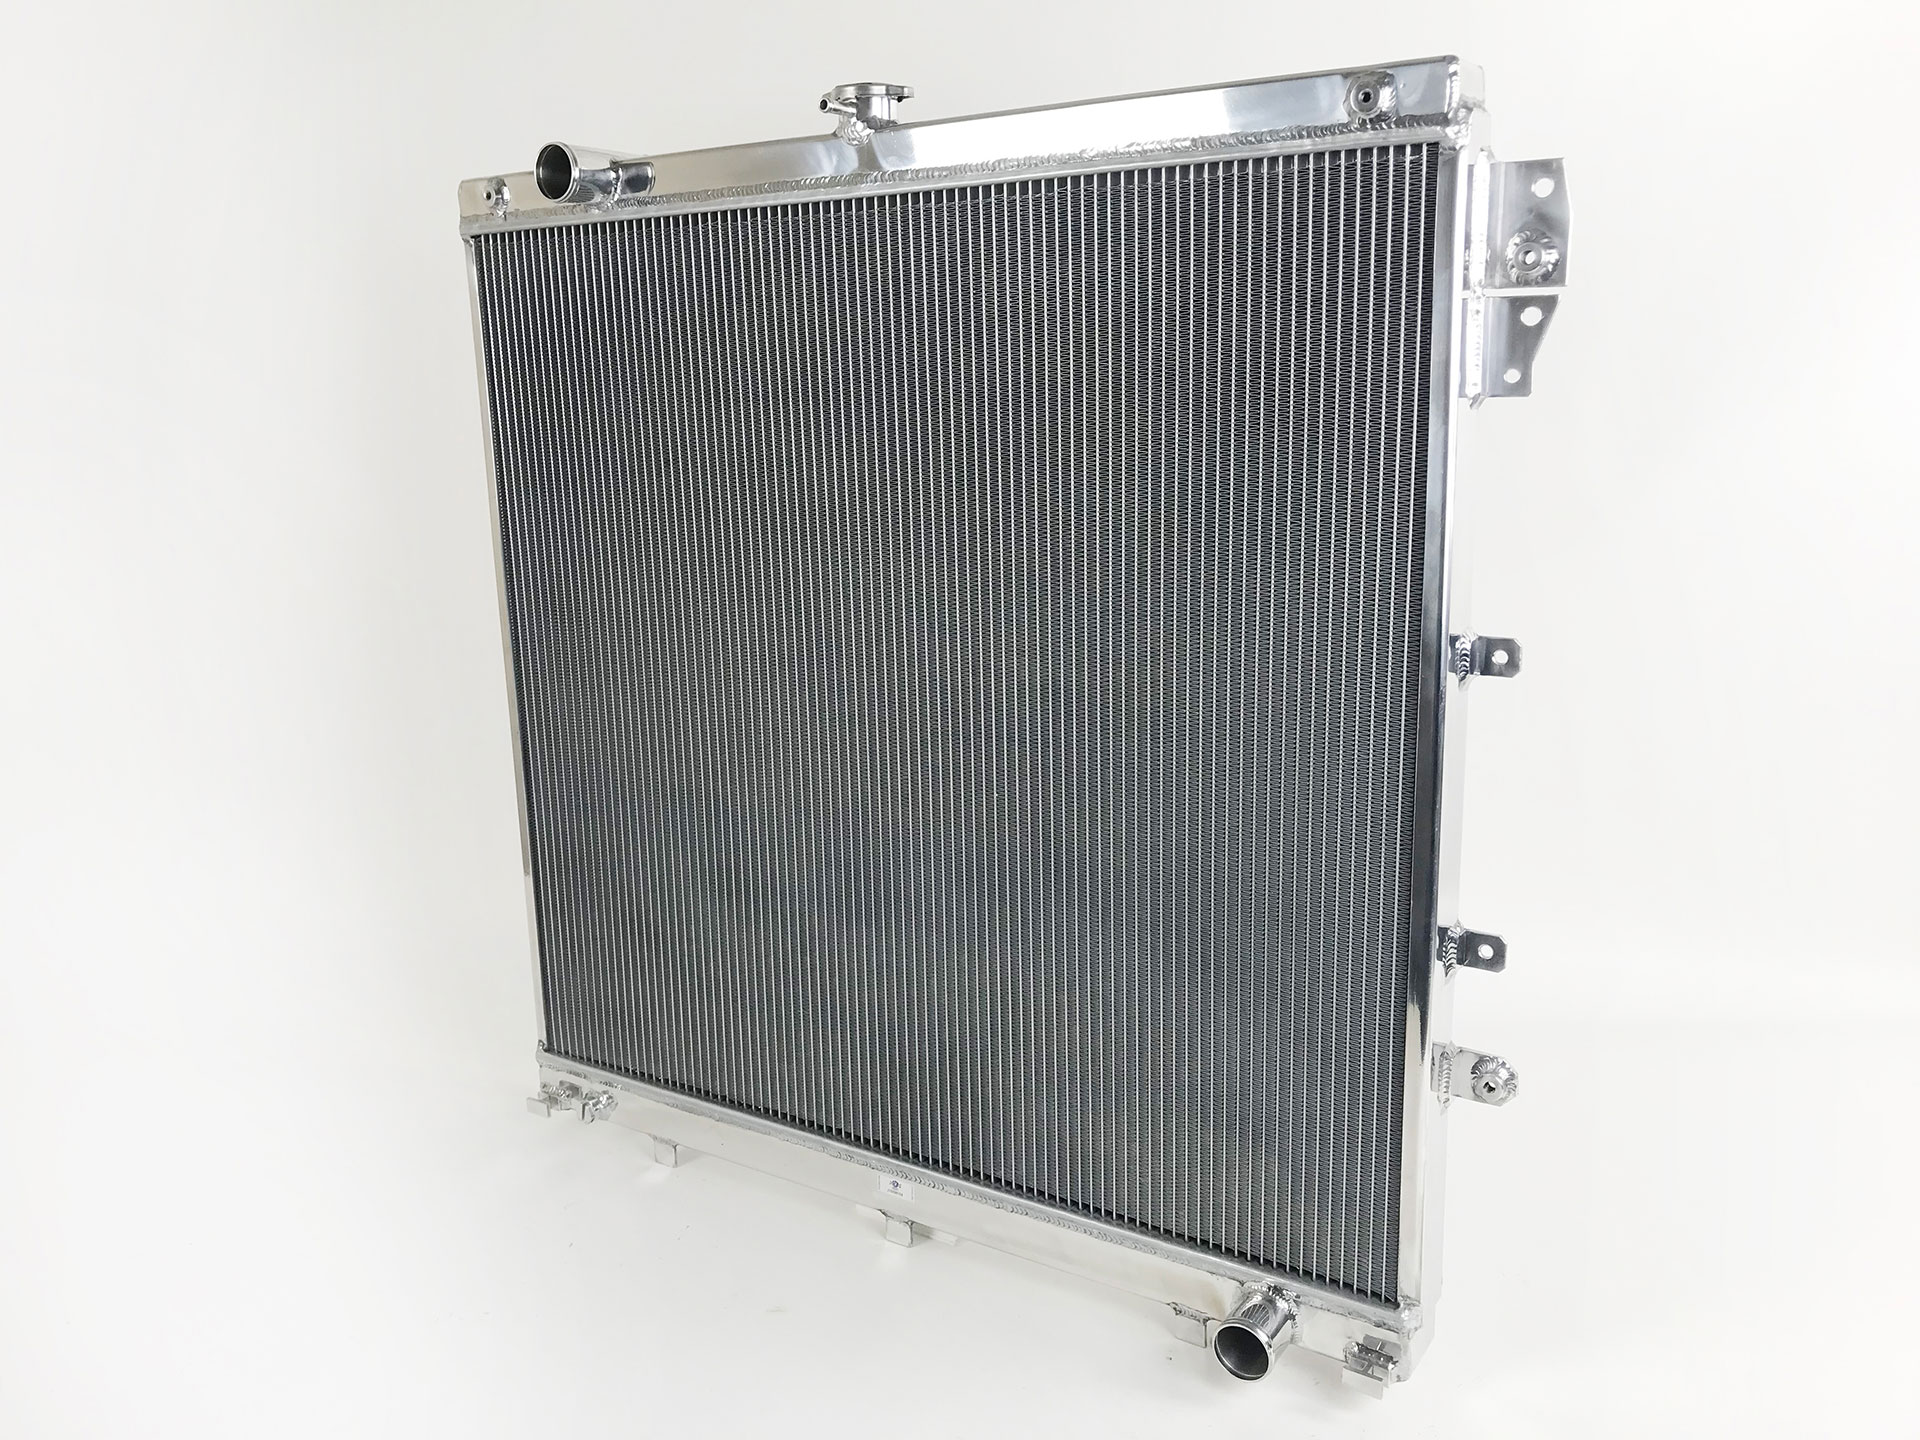 CSF Toyota 4Runner Radiator (All-Aluminum High-Performance) - (4.0L – 2010-2019)